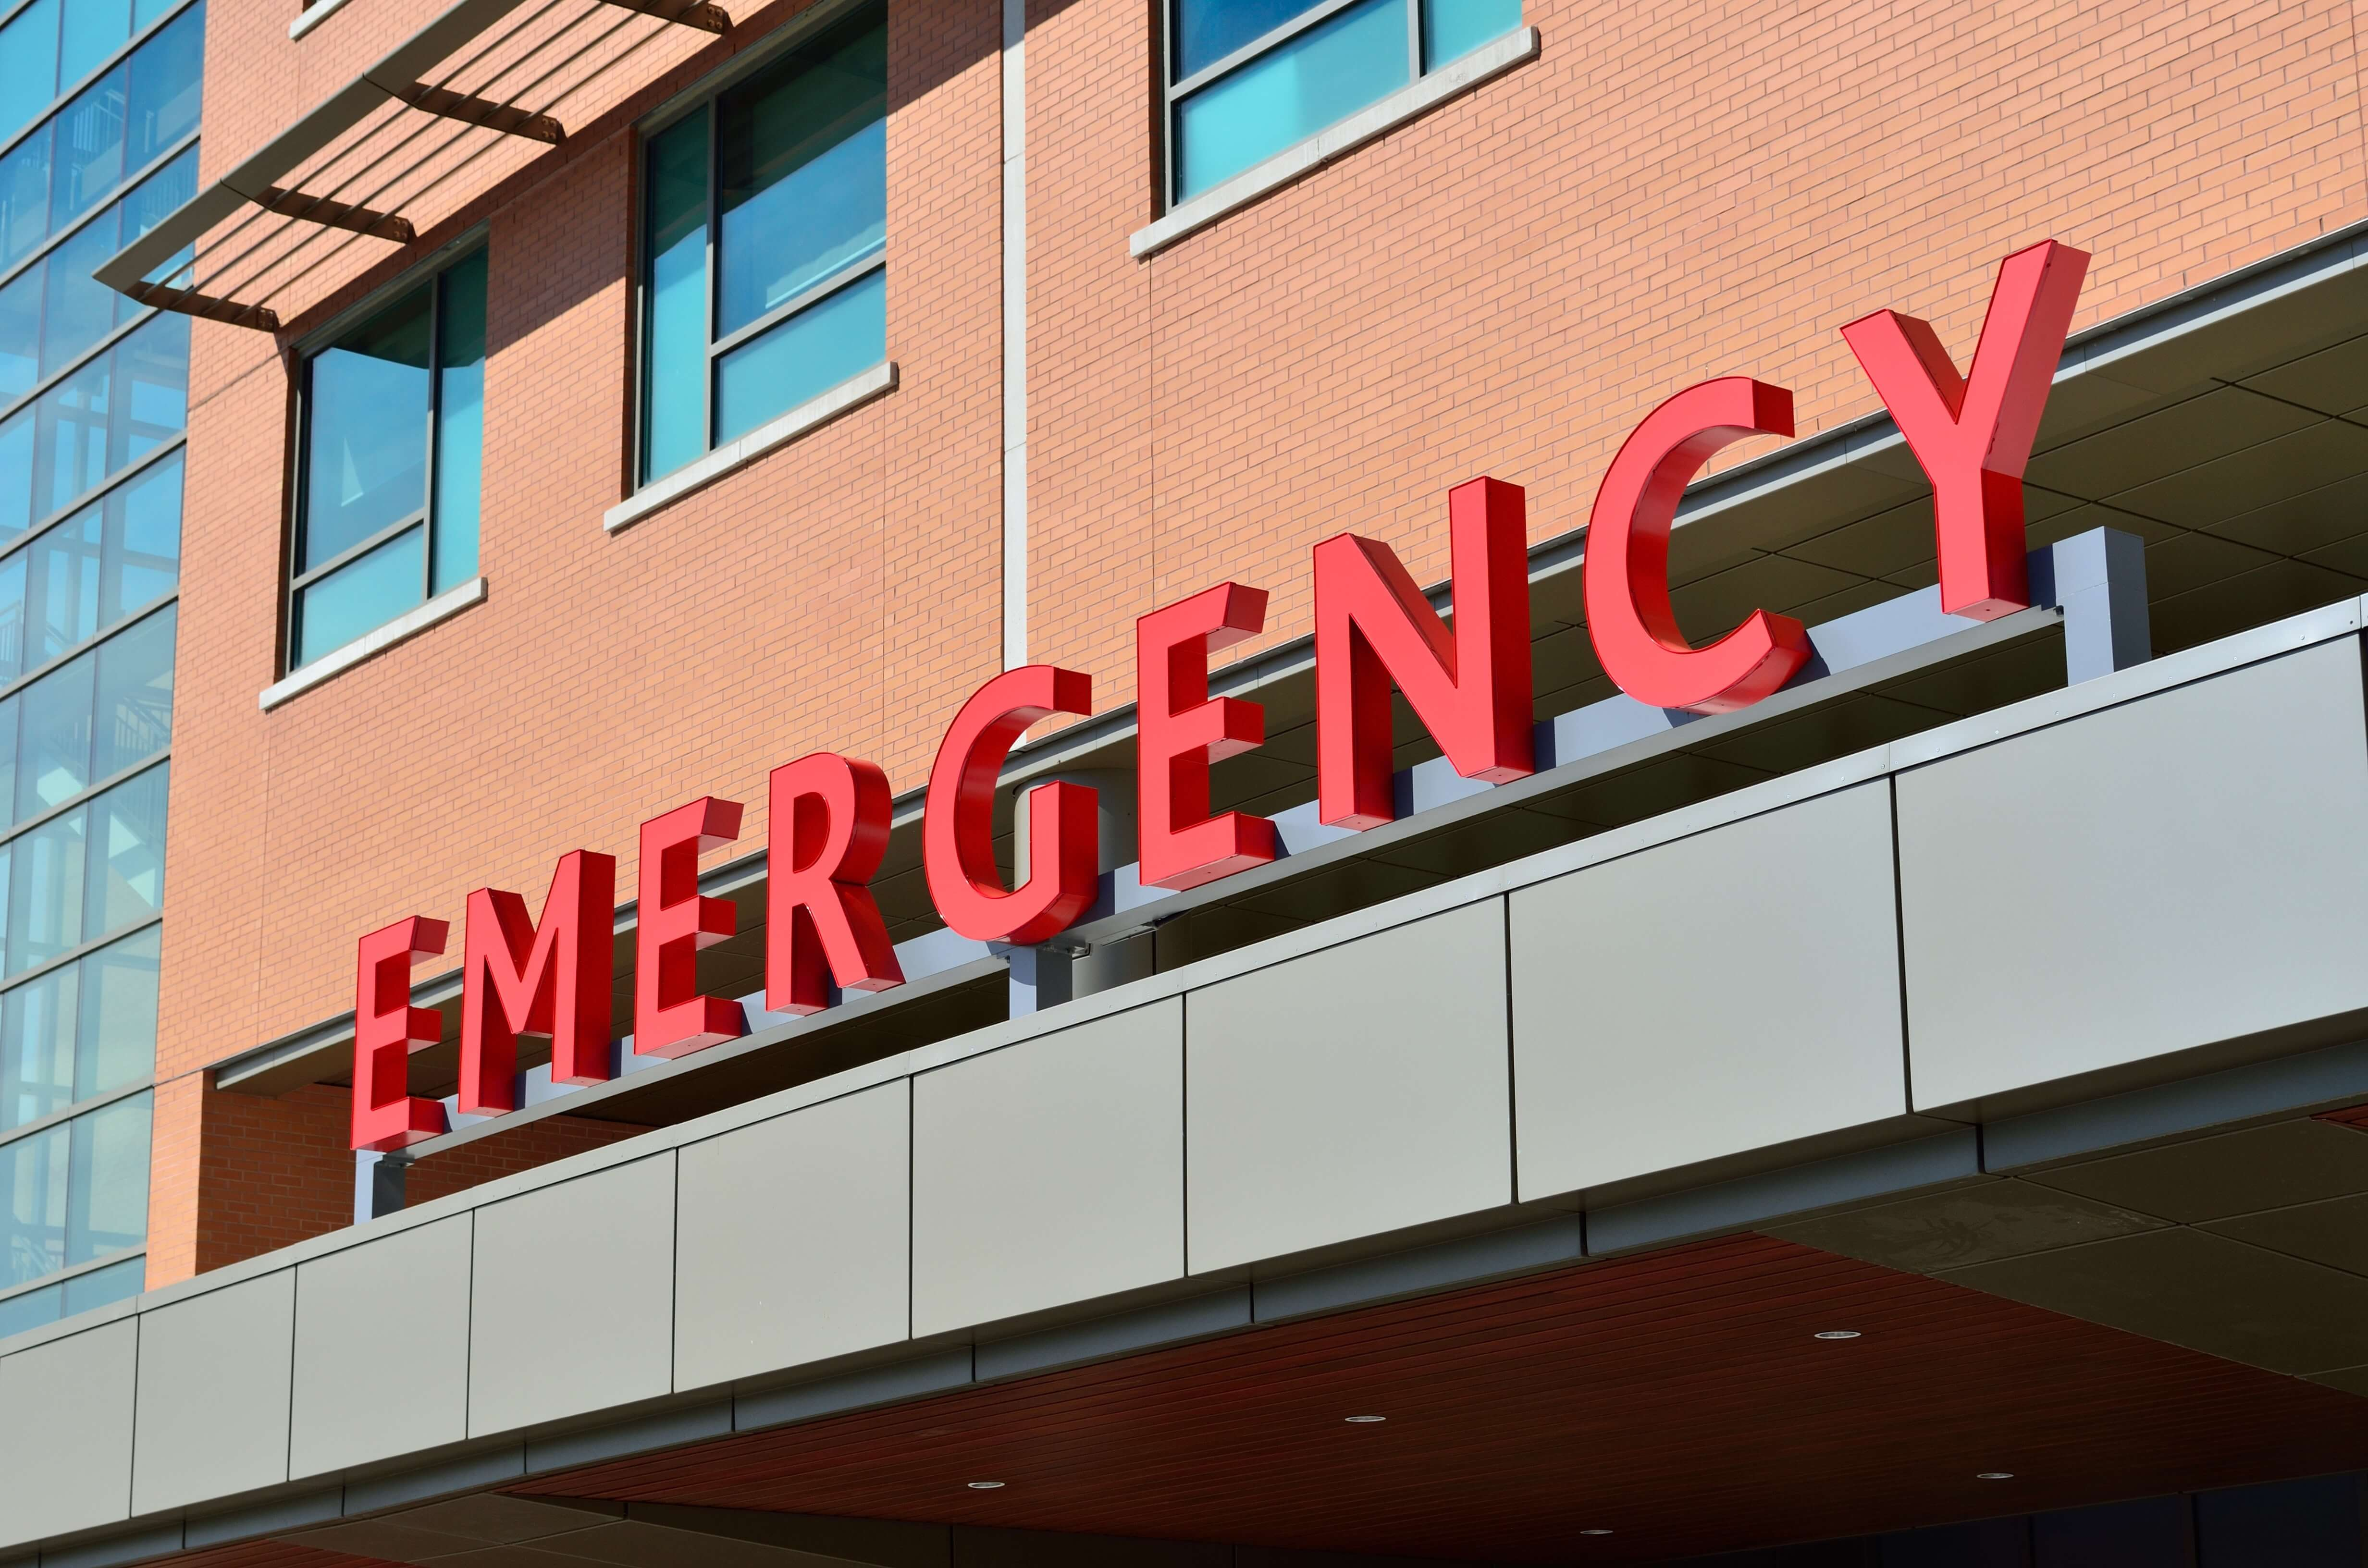 emergency is the current state of smart cities when using big data to plan hospitals